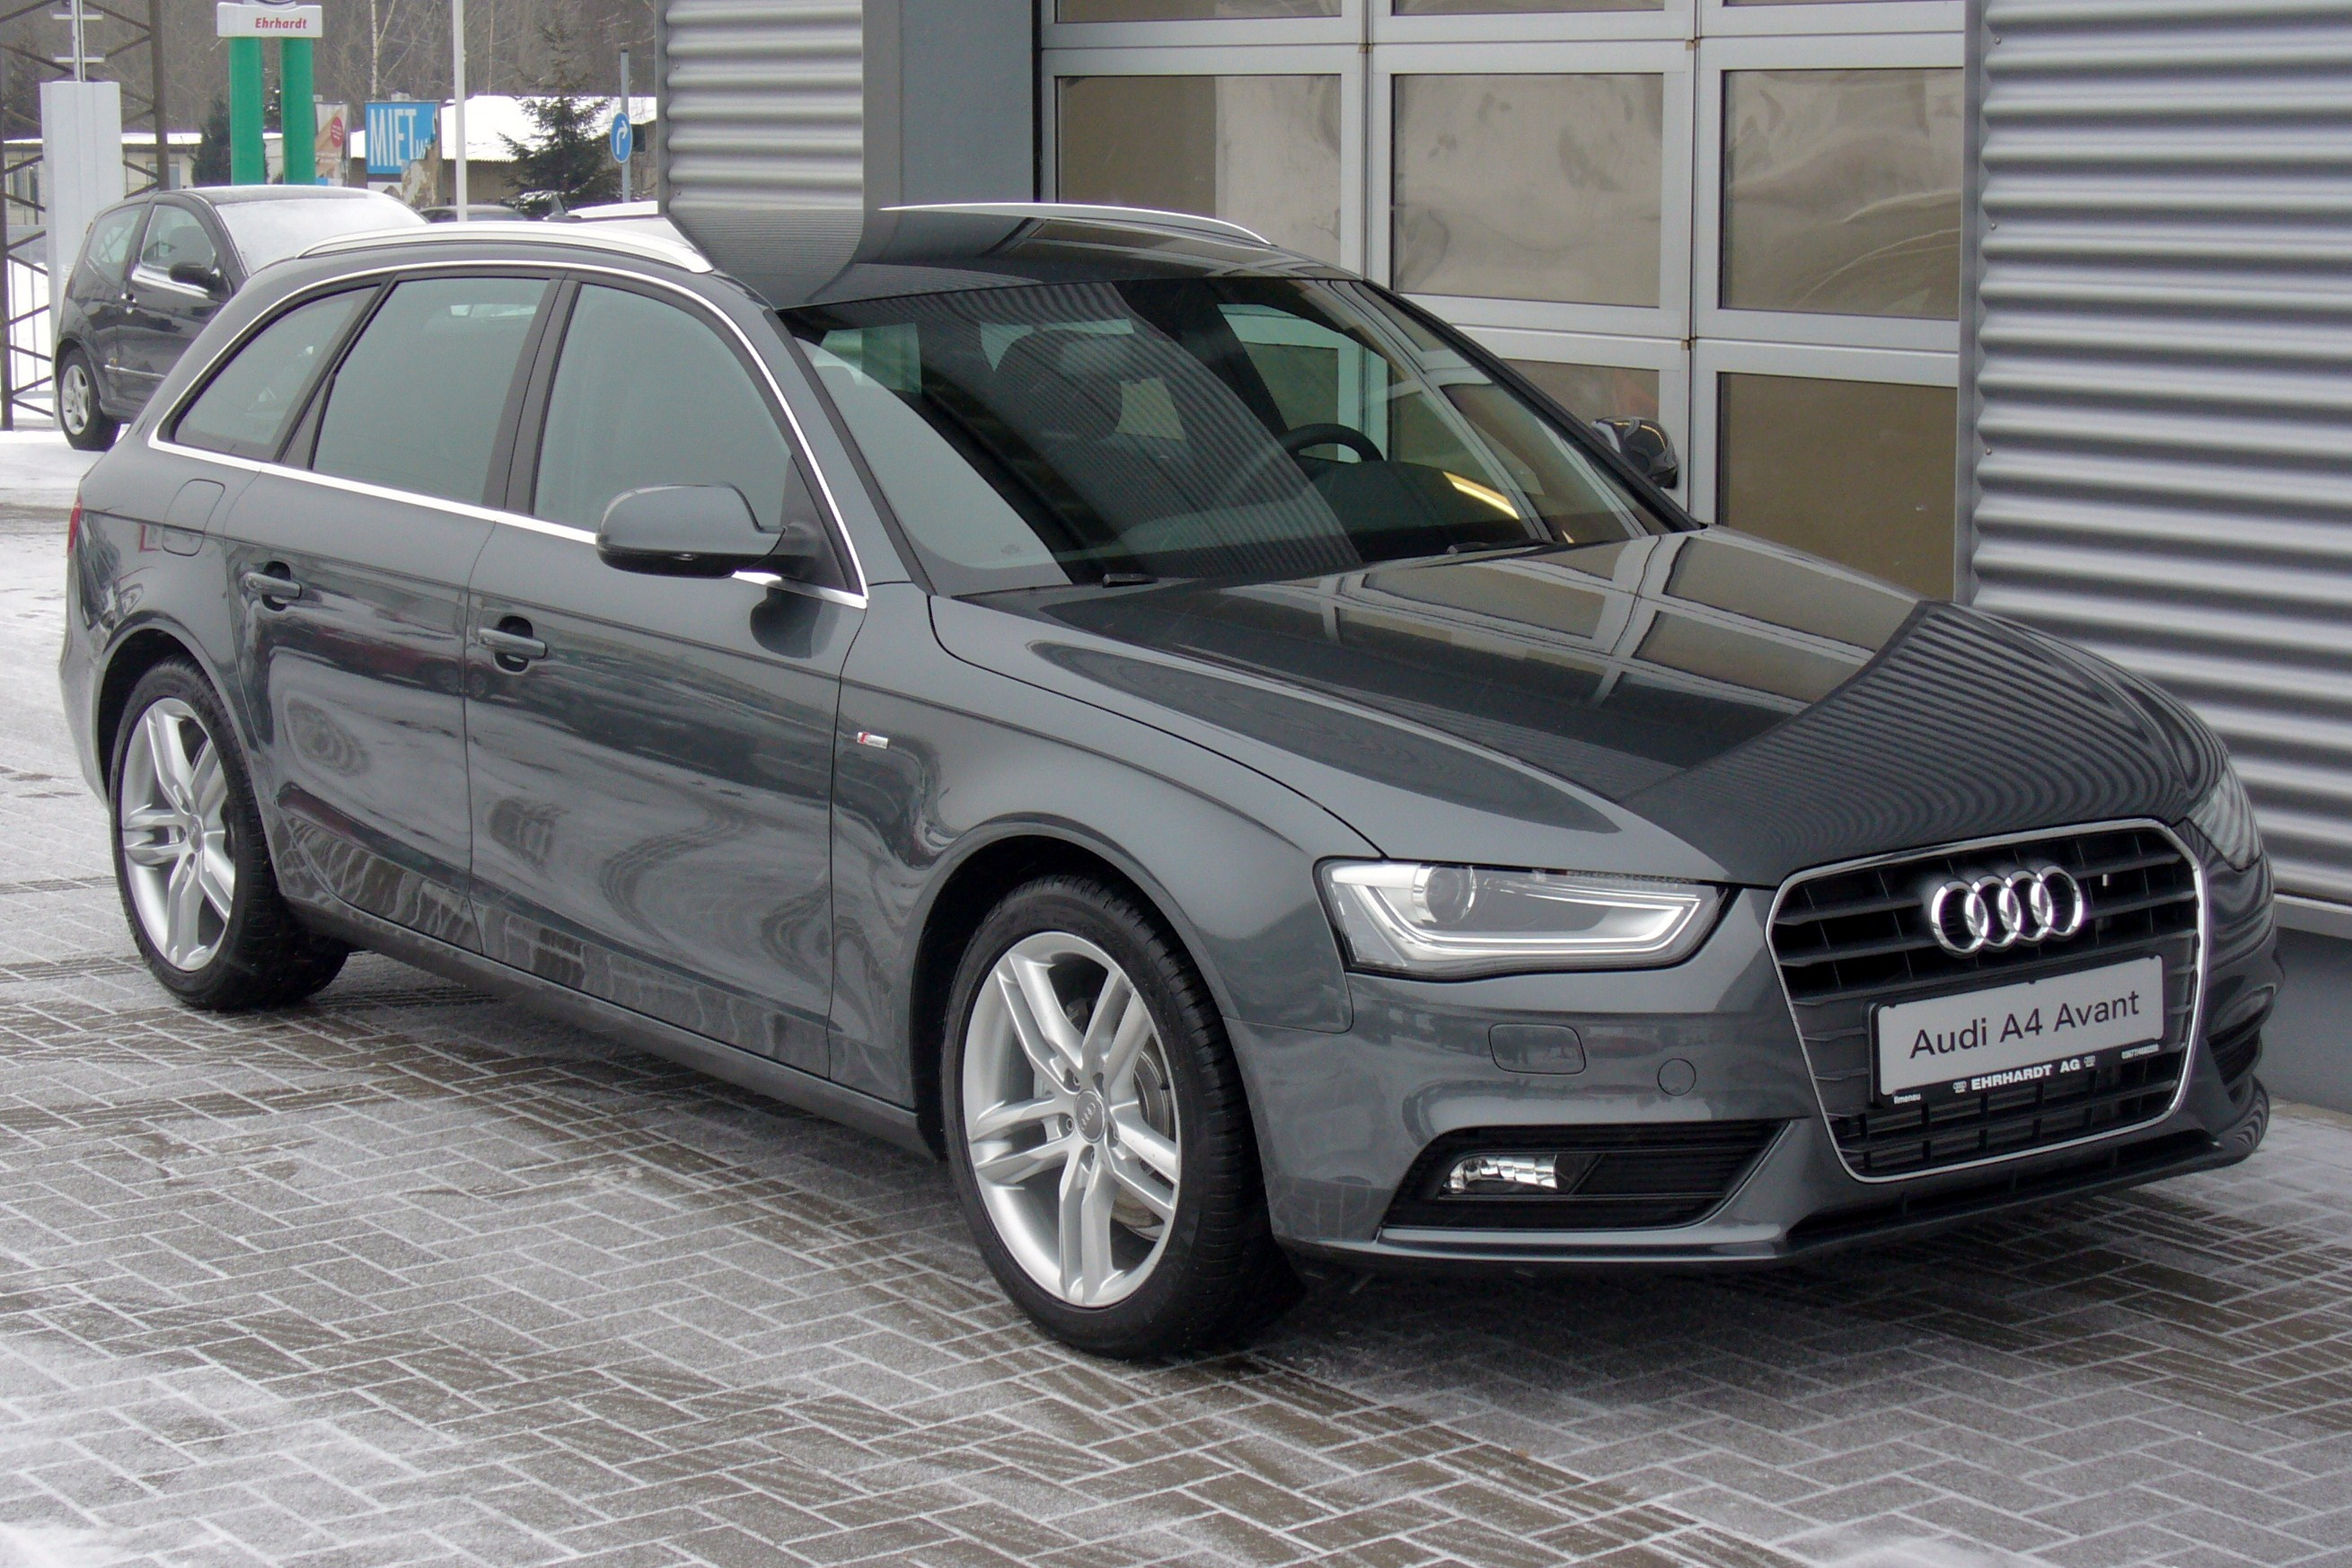 audi a4 2 0 tdi ambition photos and comments. Black Bedroom Furniture Sets. Home Design Ideas